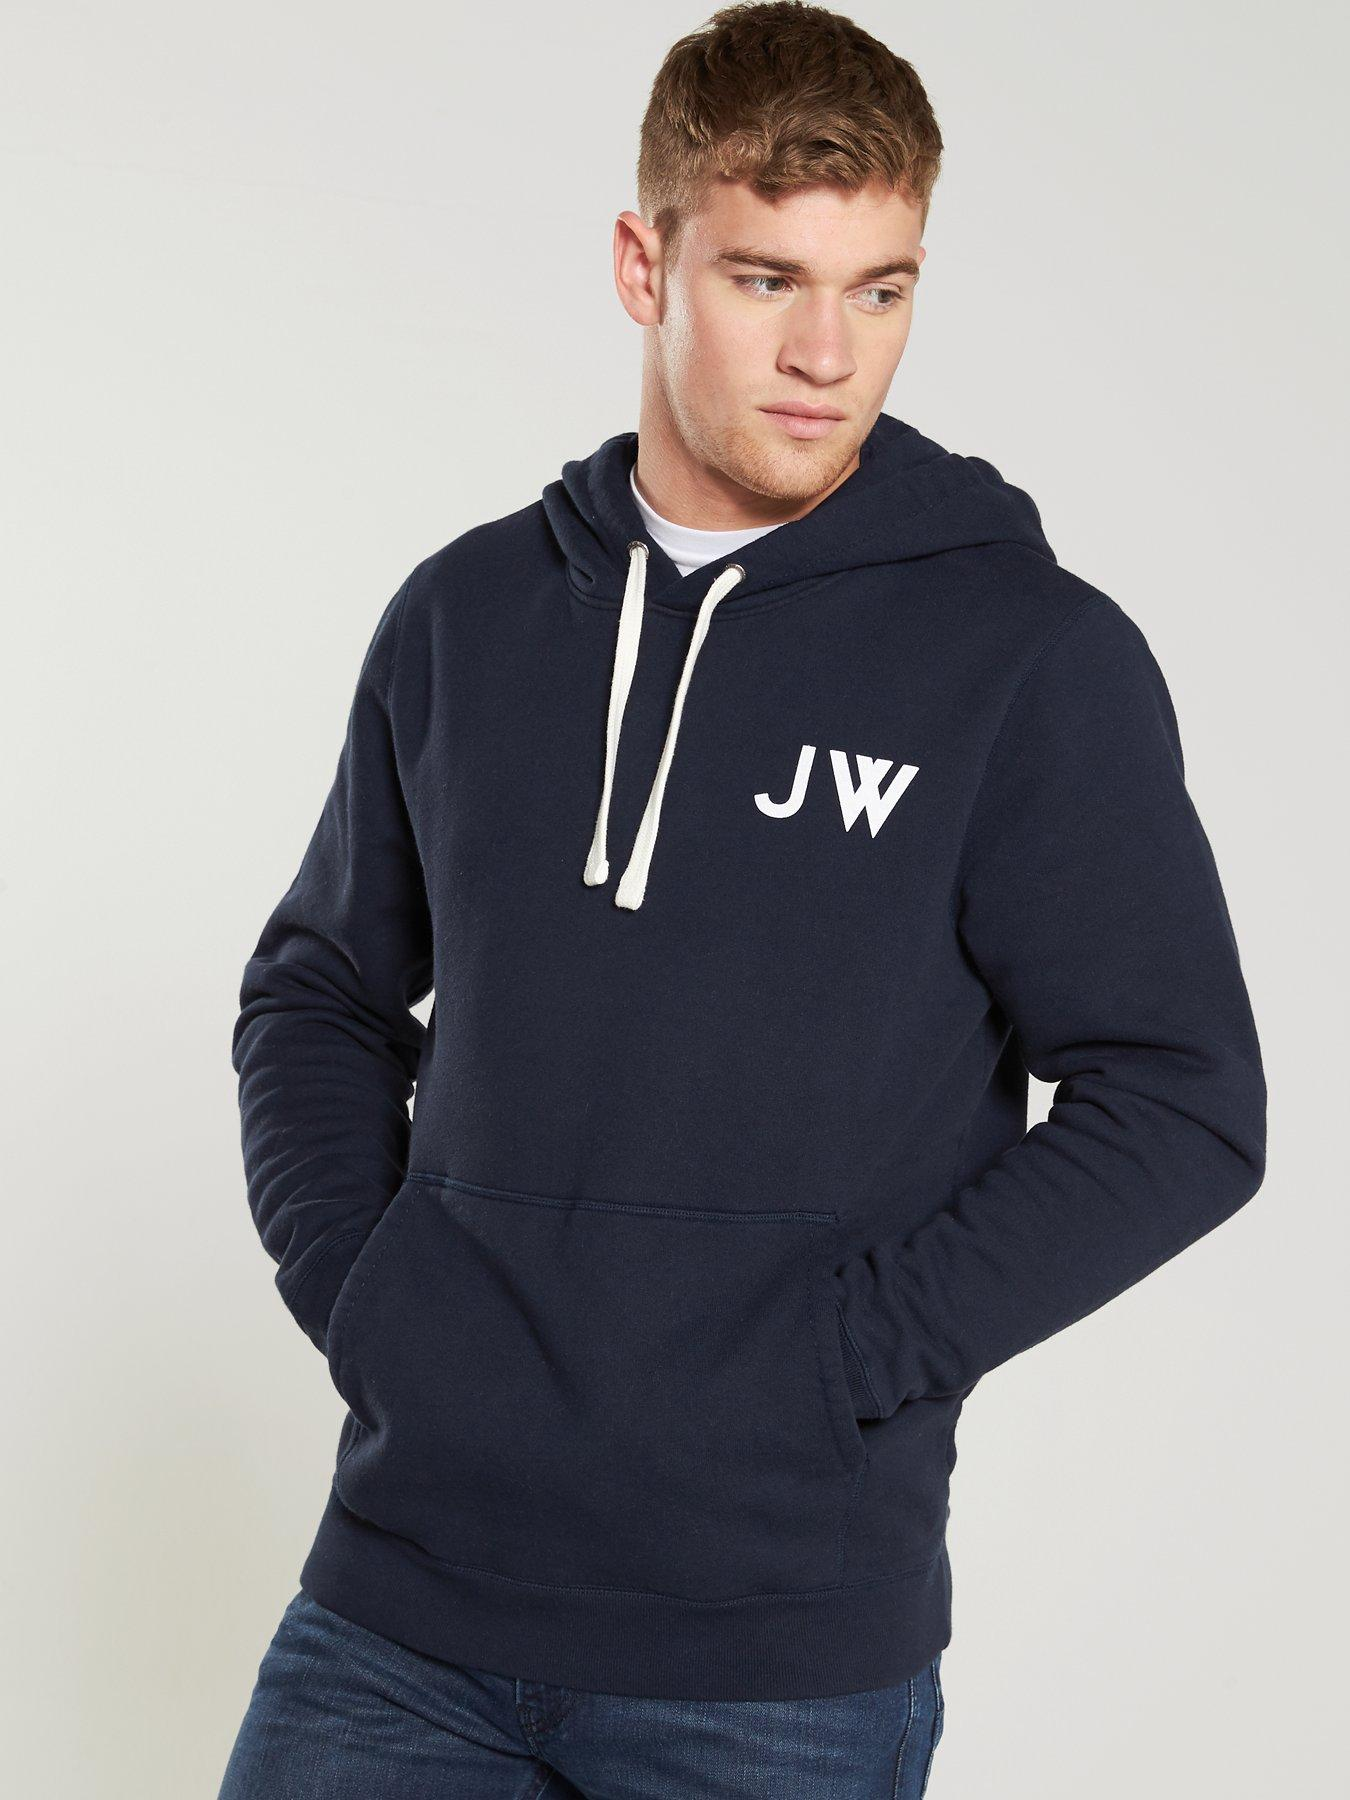 Men's Clothing Mens Jack Wills Hoodie Catalogues Will Be Sent Upon Request